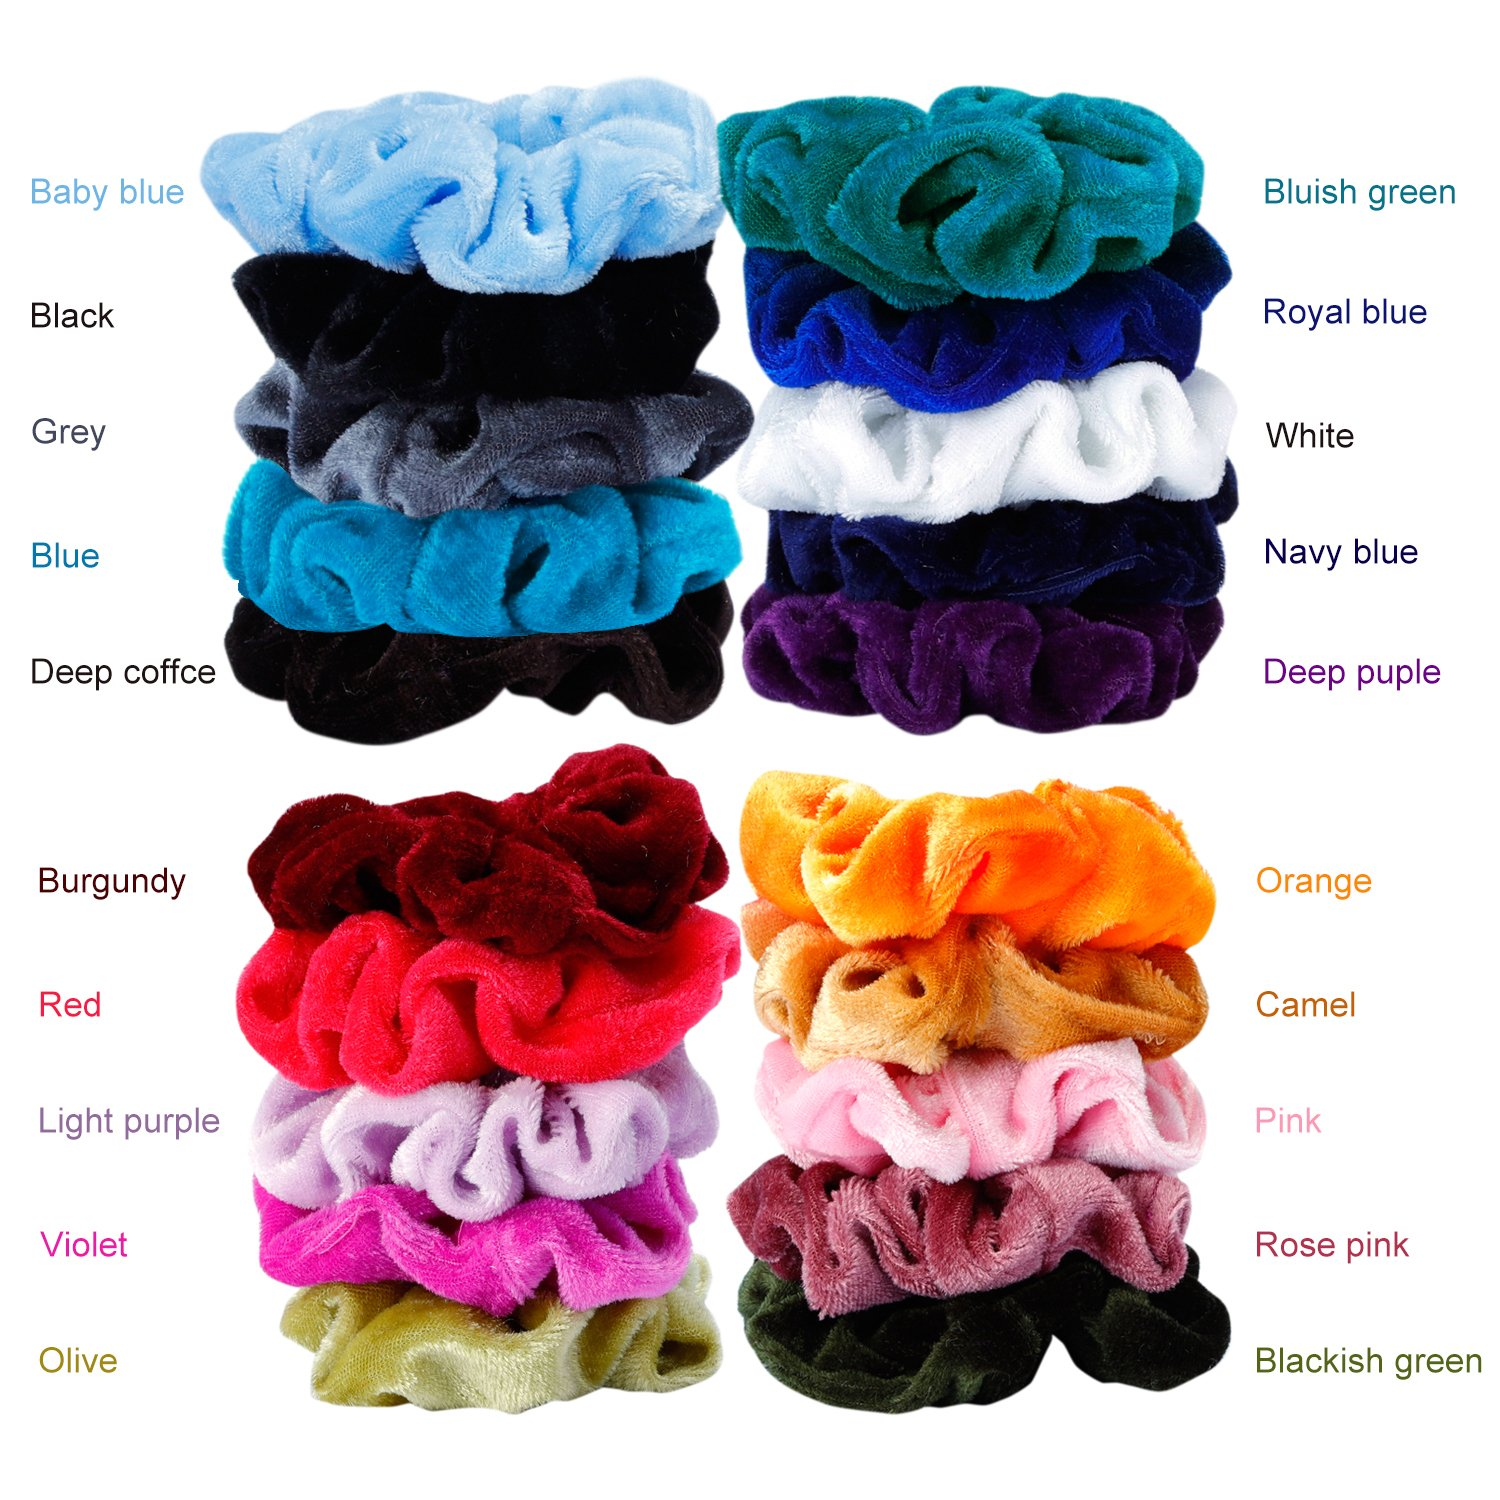 Mandydov 20 Pcs Hair Scrunchies Velvet Elastic Hair Bands Scrunchy Hair Ties Ropes Scrunchie for Women or Girls Hair Accessories - 20 Assorted Colors Scrunchies. by Mandydov (Image #3)